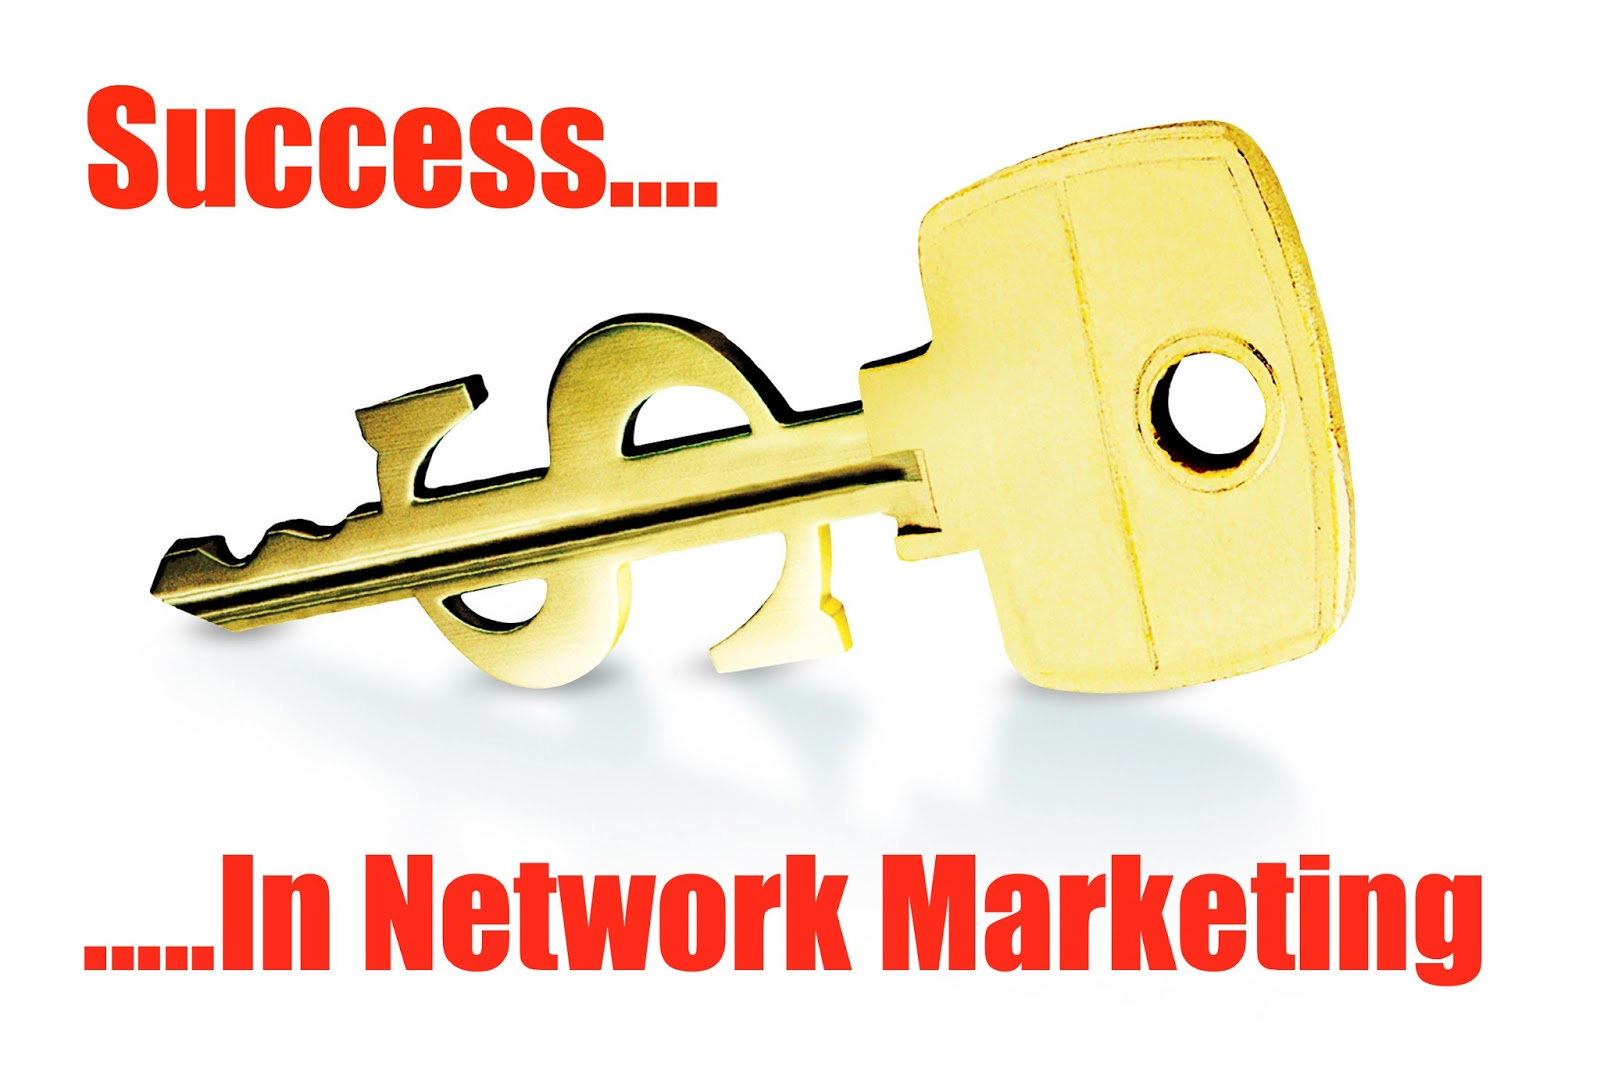 marketing article,Earn More Money With These Network Marketing Tips